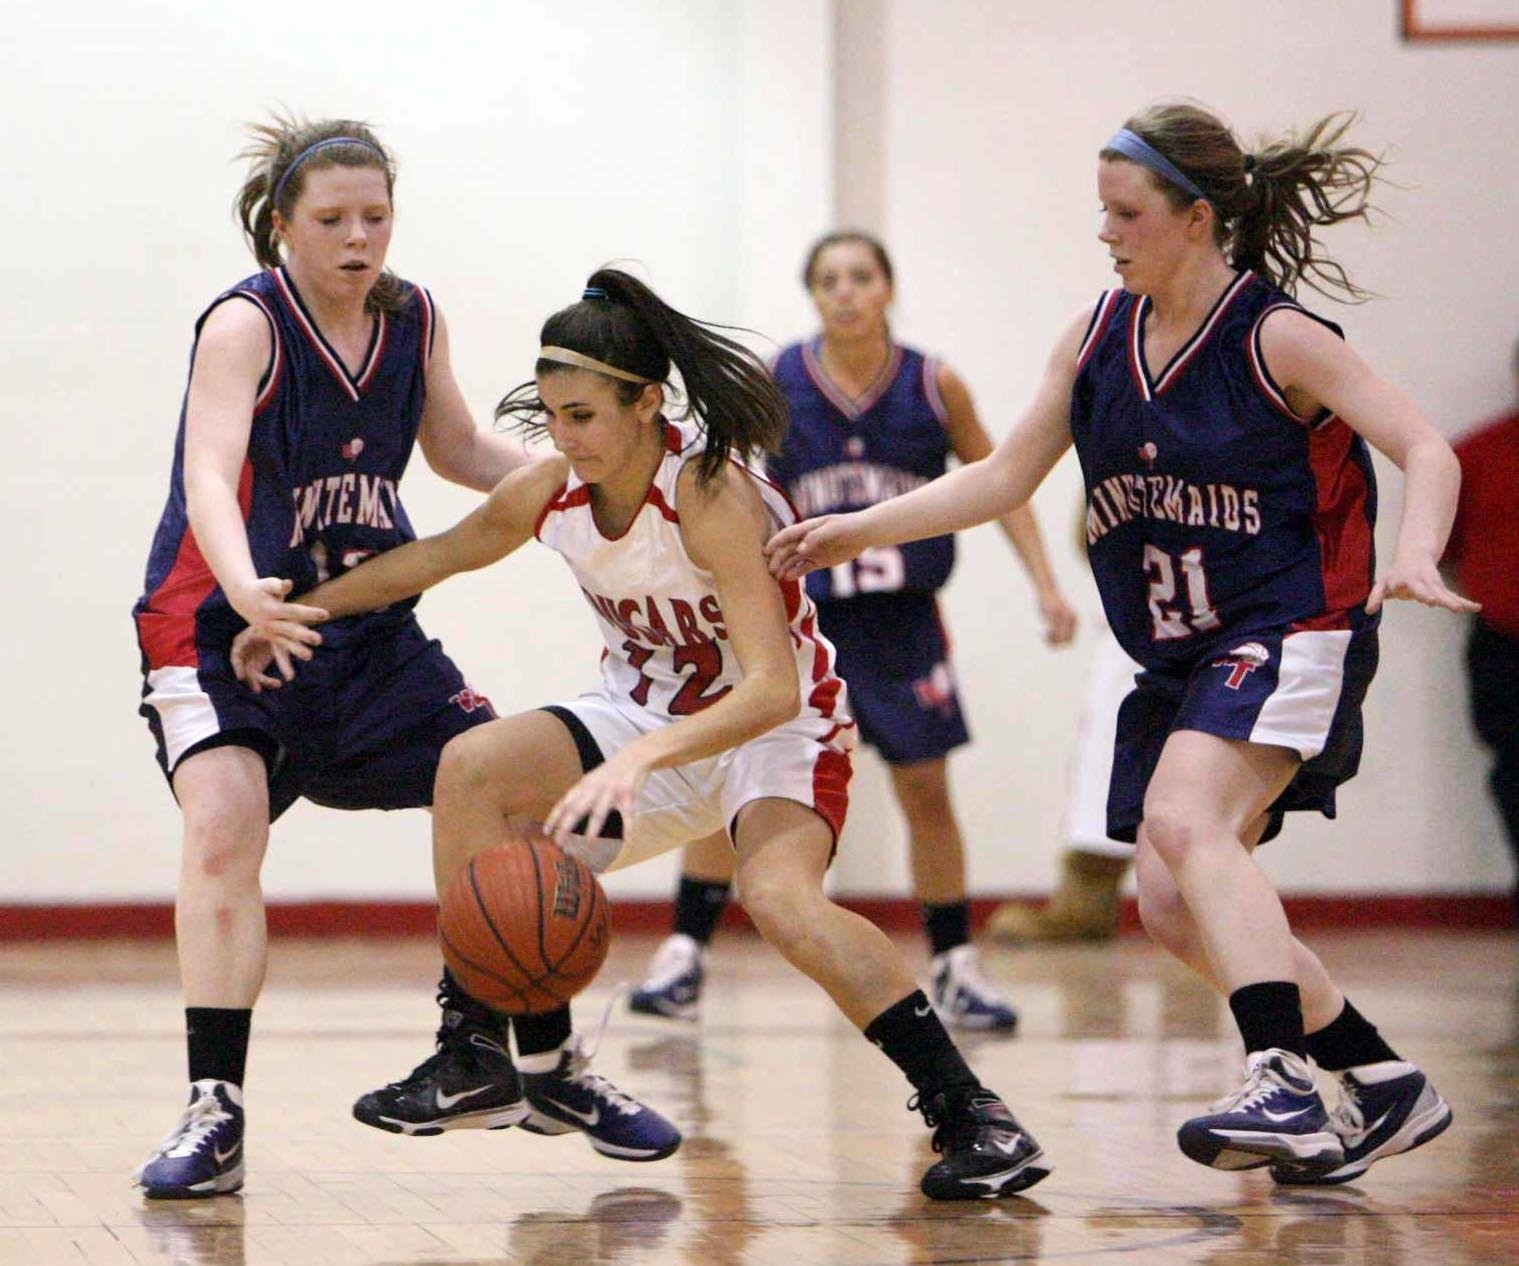 DICK'S Nationals girls semifinal preview: Riverdale ...  |Basketball Girl